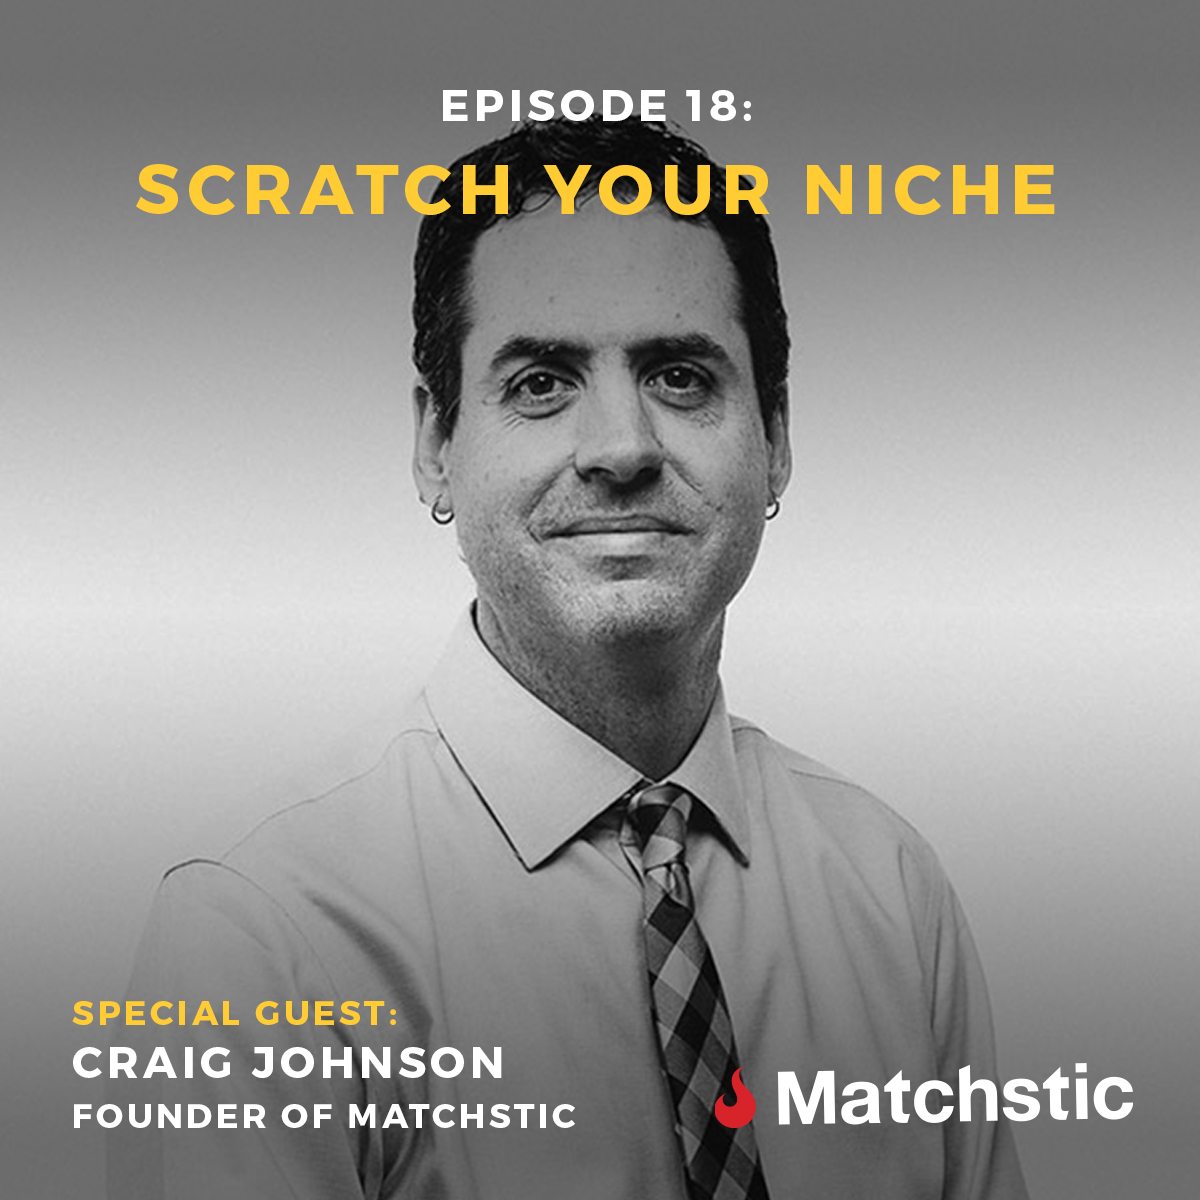 Podcast interview with Craig Johnson of Matchstic in Atlanta, Georgia